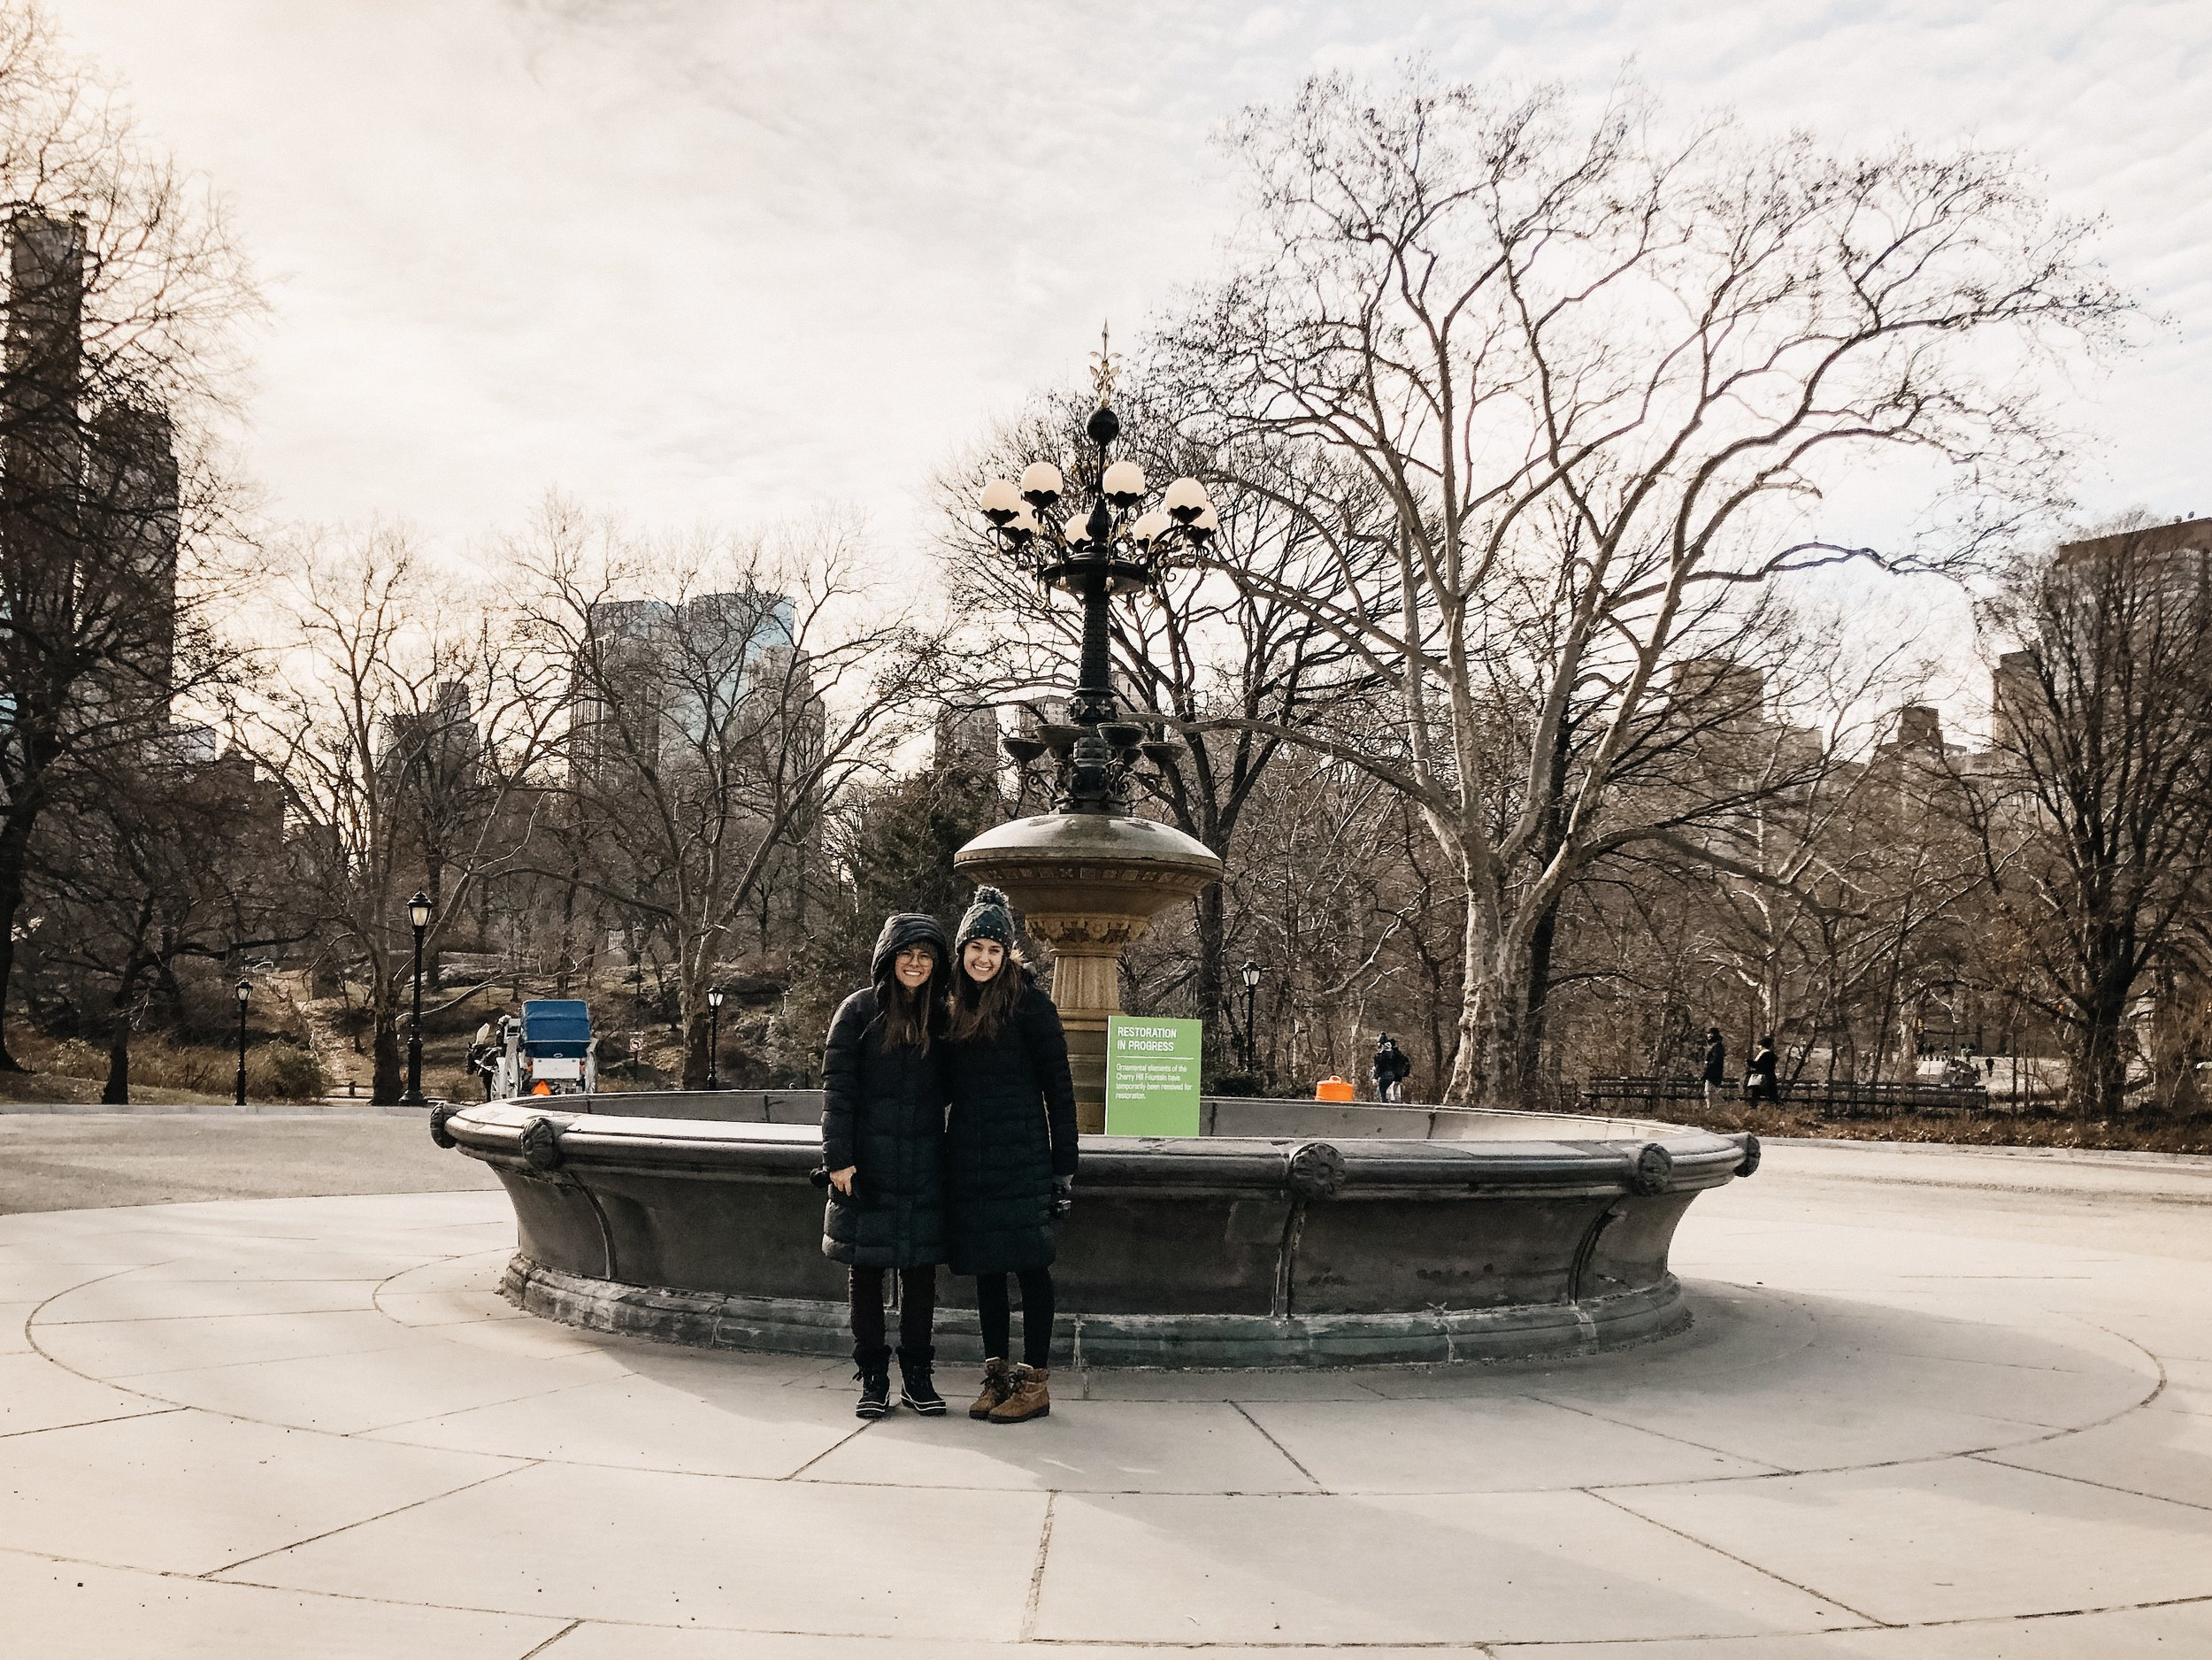 Photo taken by random person passing by of Samantha McHenry and Sara Kreski in front of (not real) Friends Fountain in Central Park.